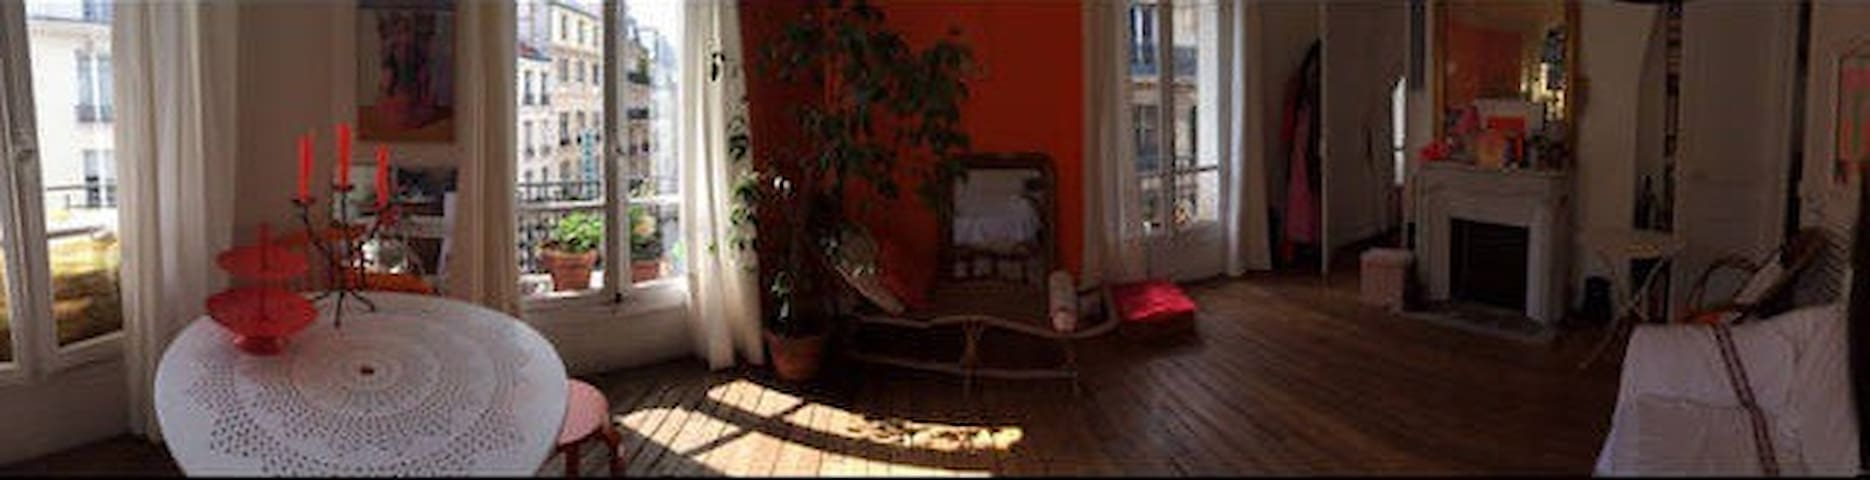 Your room in a charming appartement - center Paris